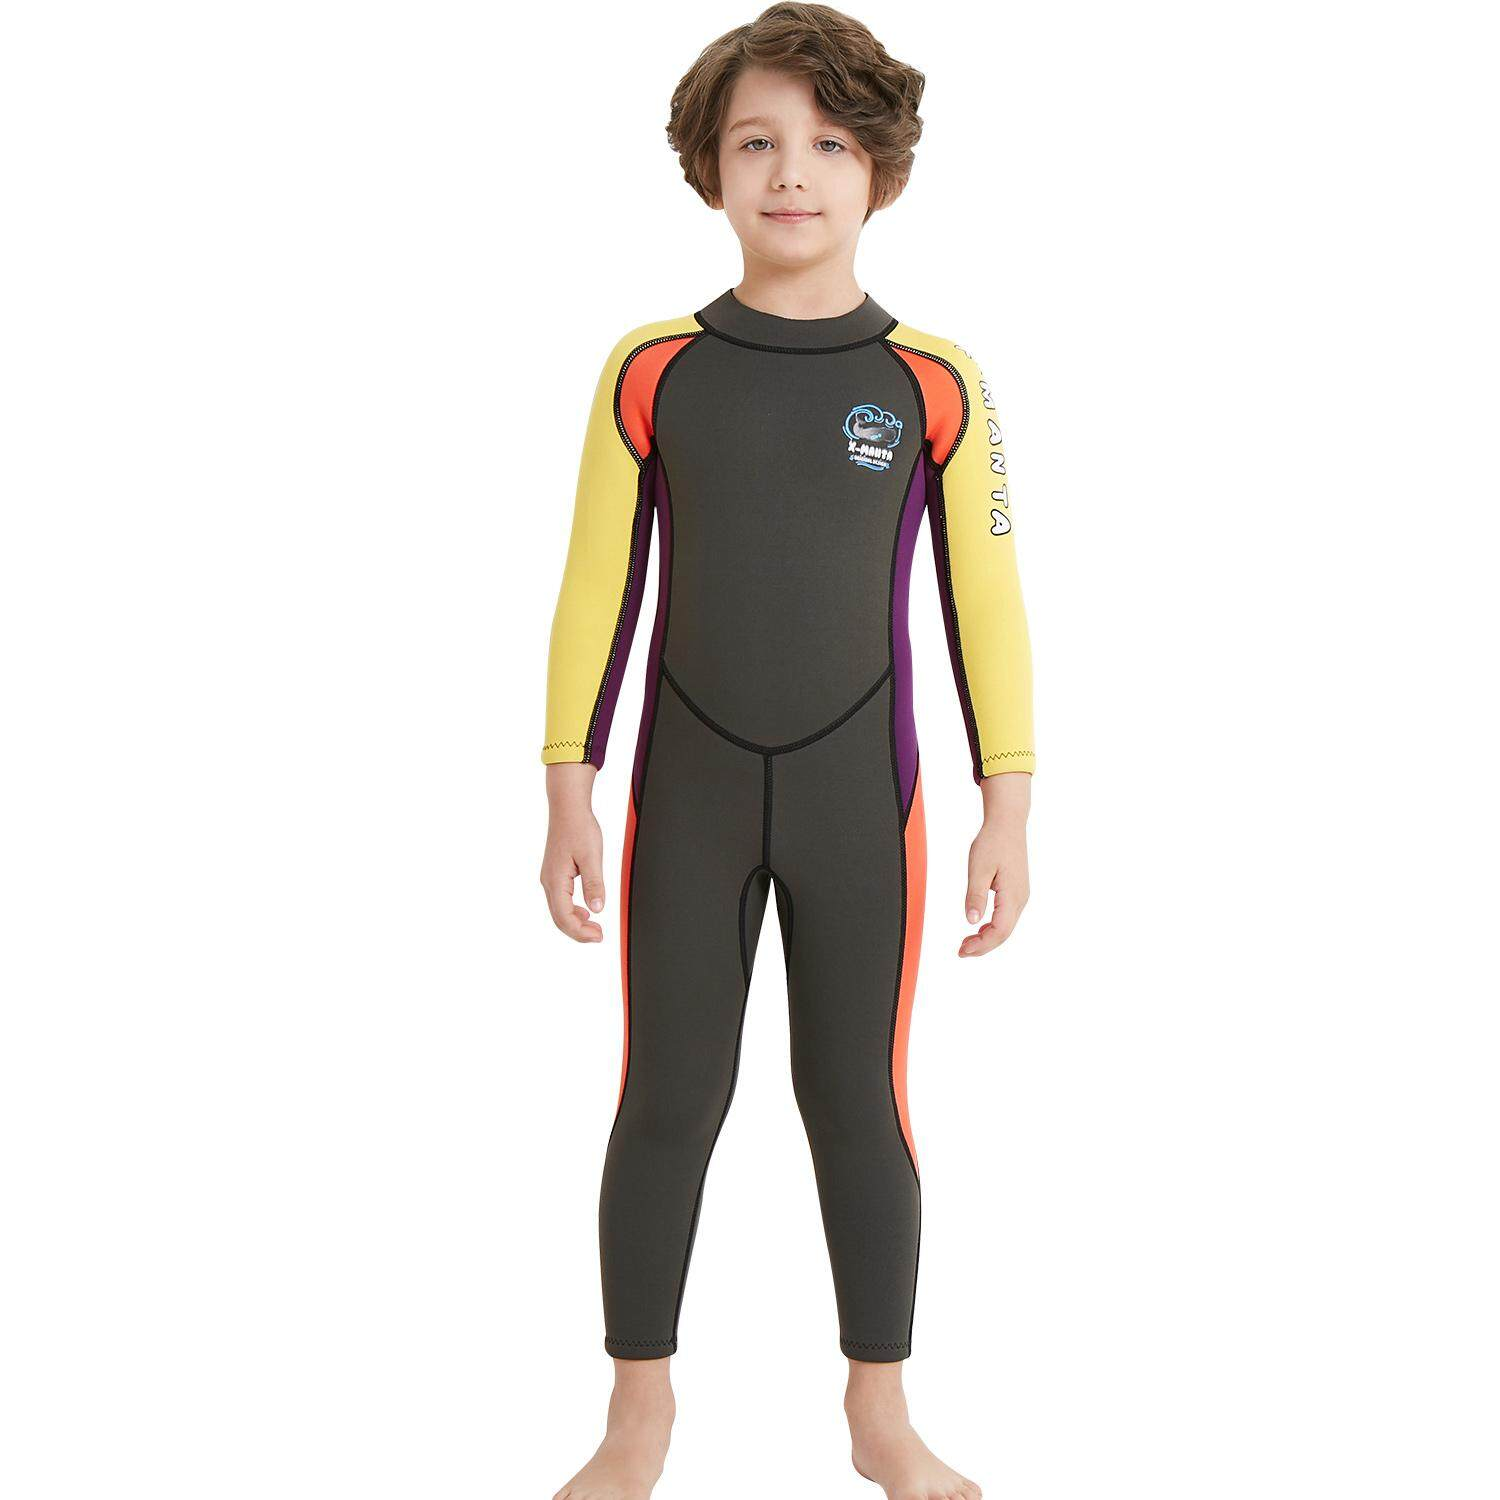 7800c50b1a 2.5mm Wetsuit Skin Dive Swimming Suit For Winter Kids Boys Water Sports  clothes(Yellow